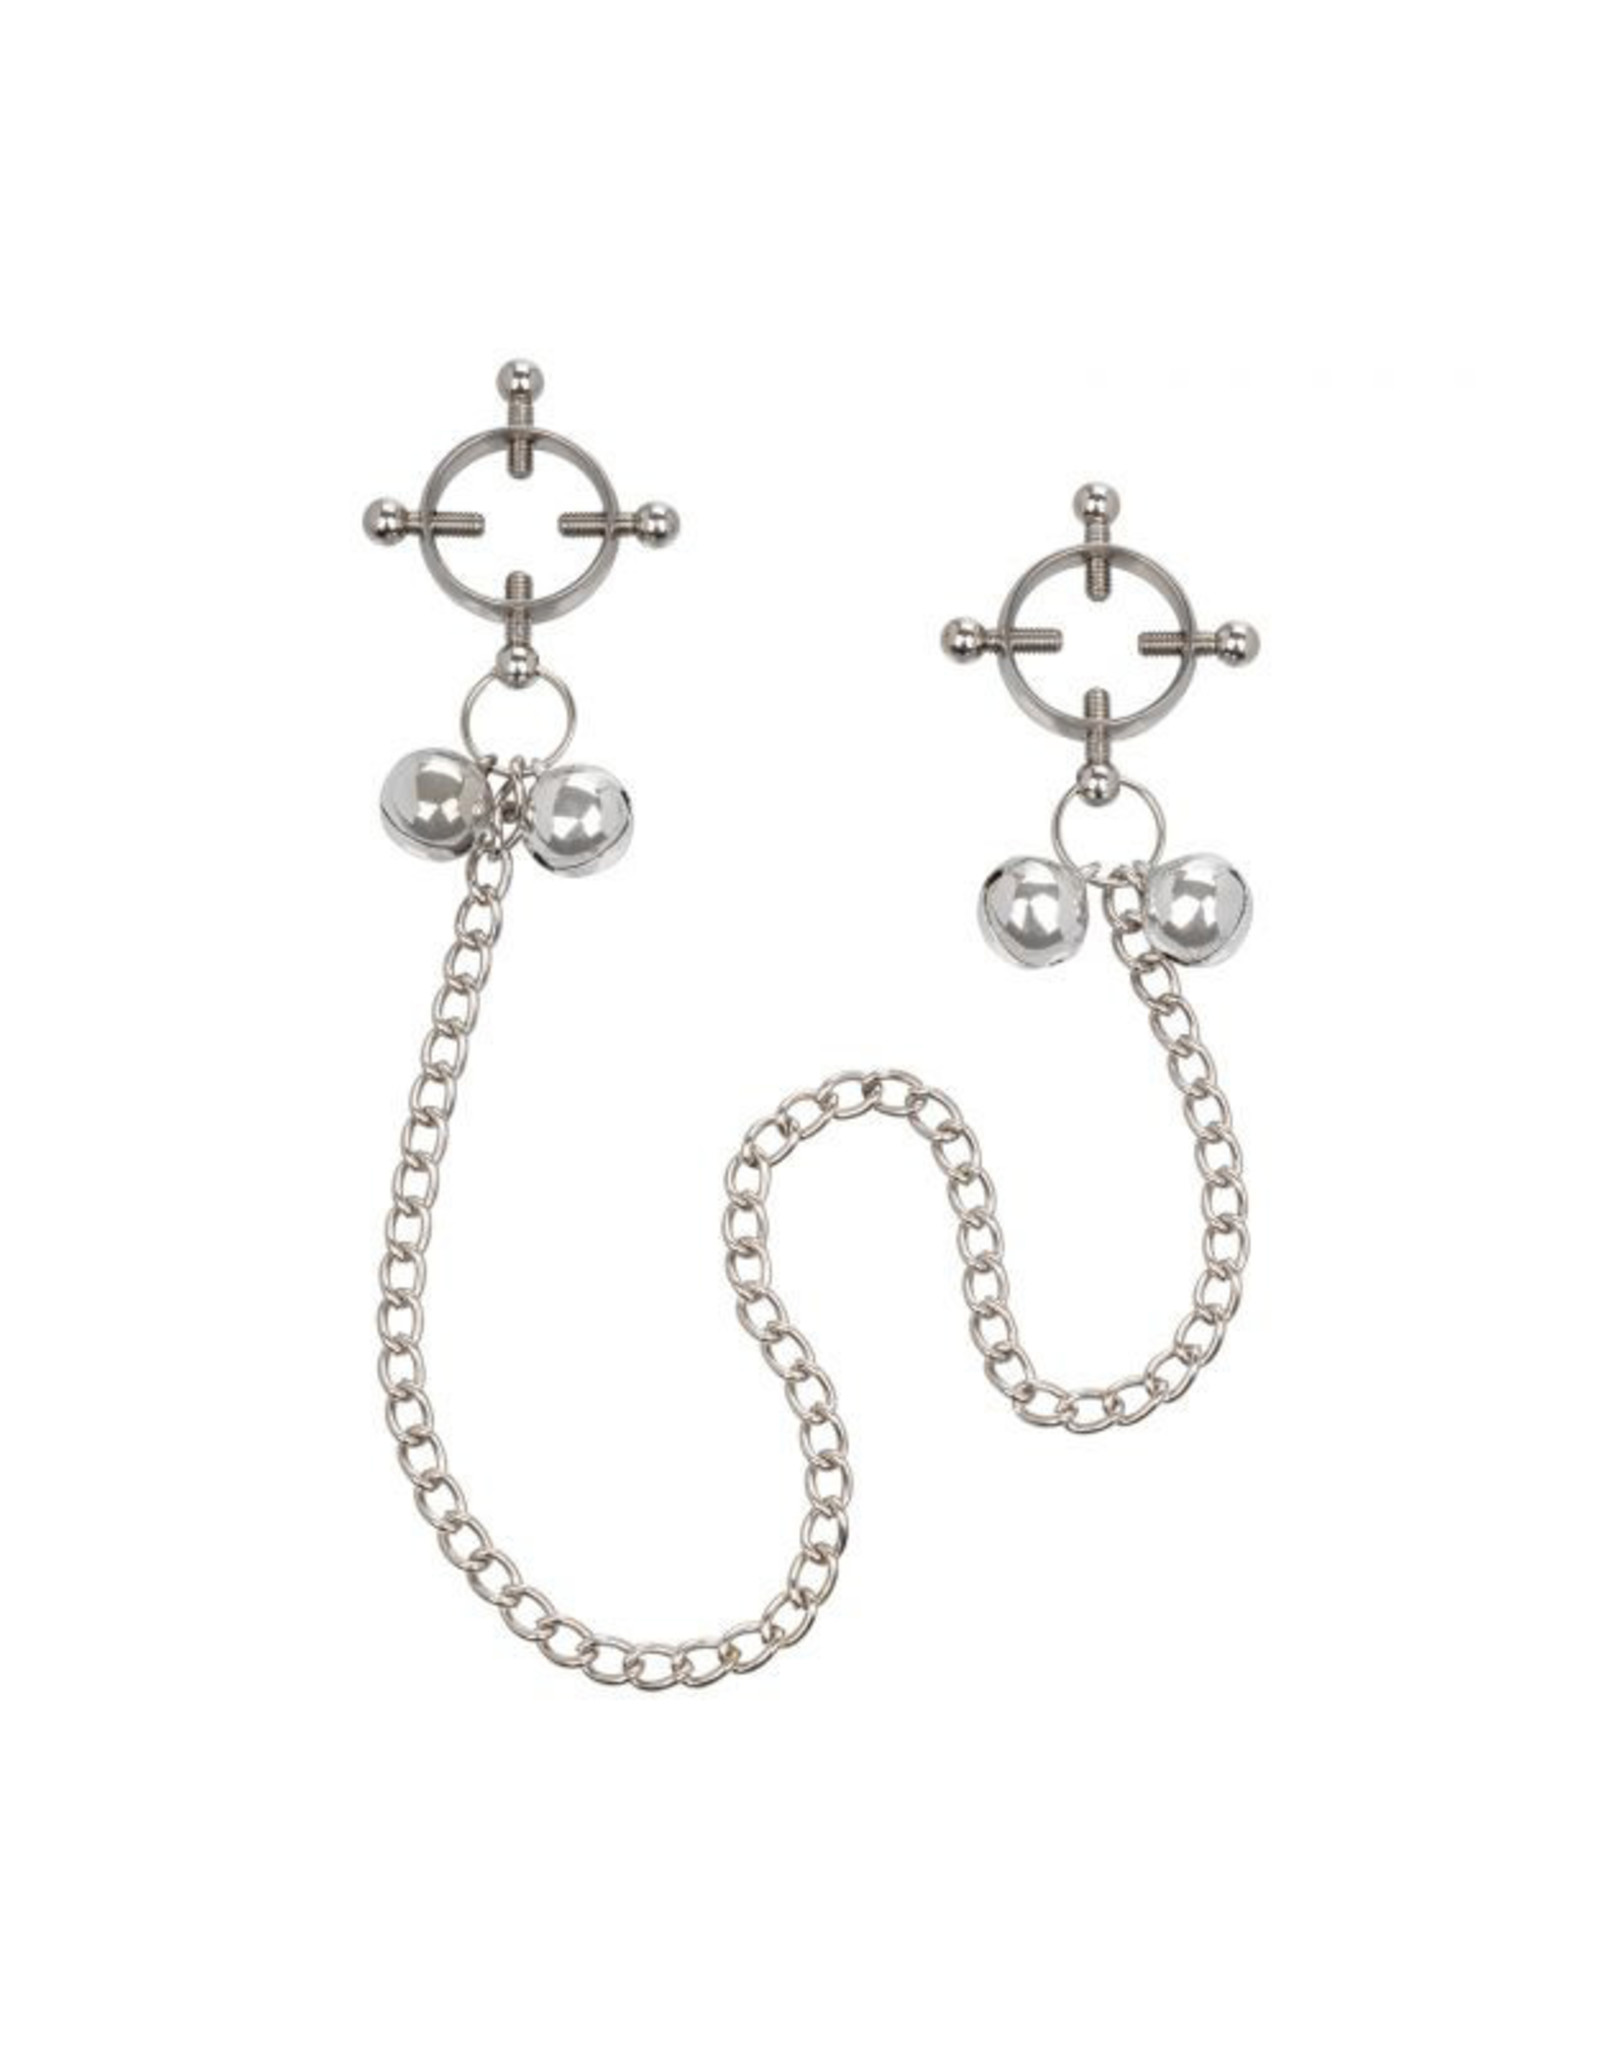 California Exotics 4 Point Nipple Clamp with Bells